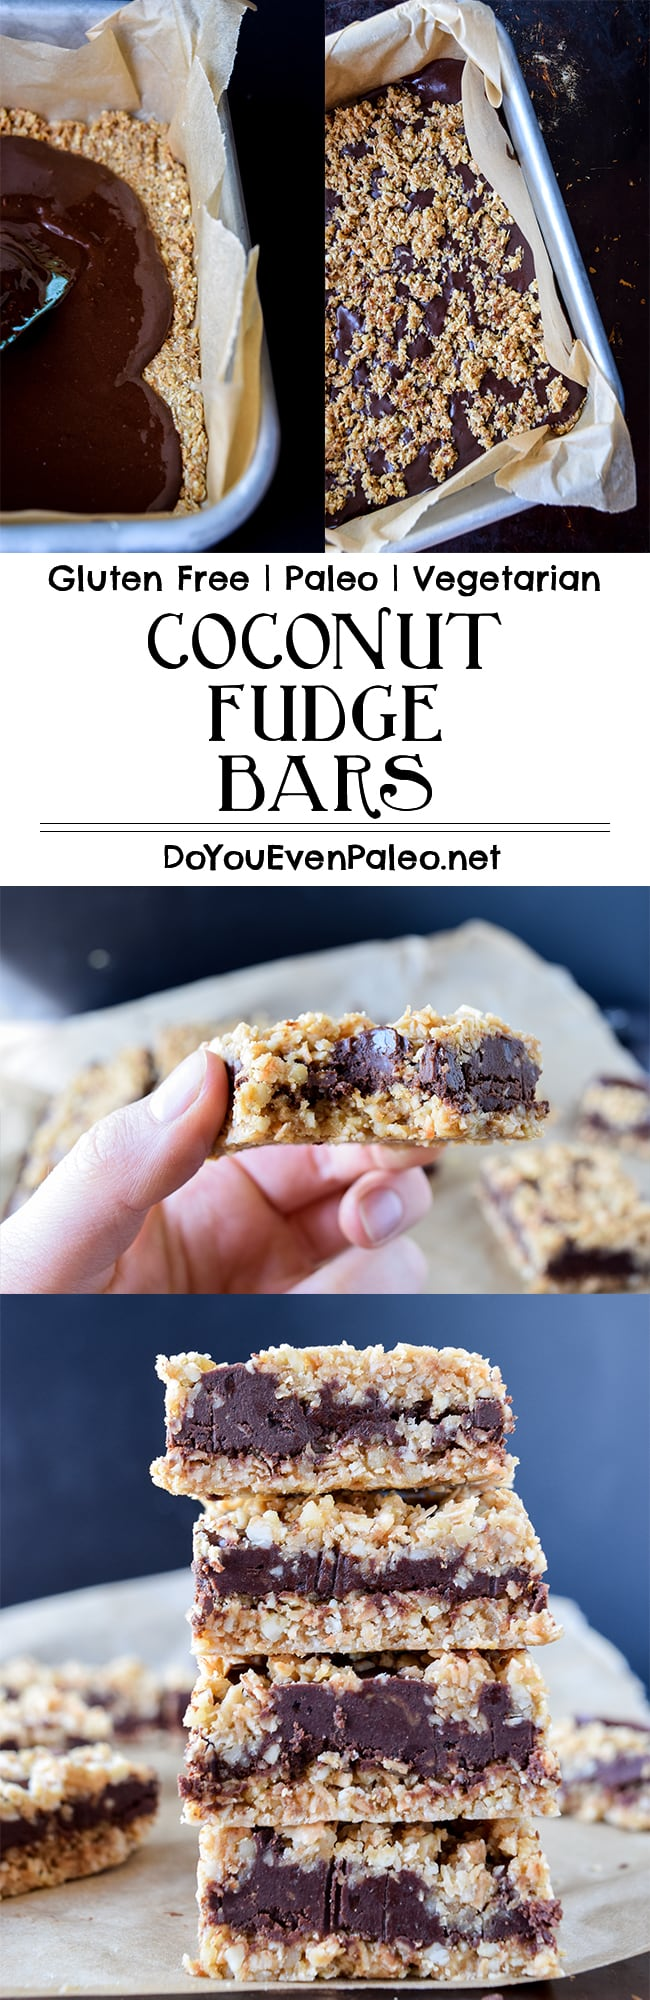 Paleo Coconut Fudge Bars Recipe Pin | DoYouEvenPaleo.net